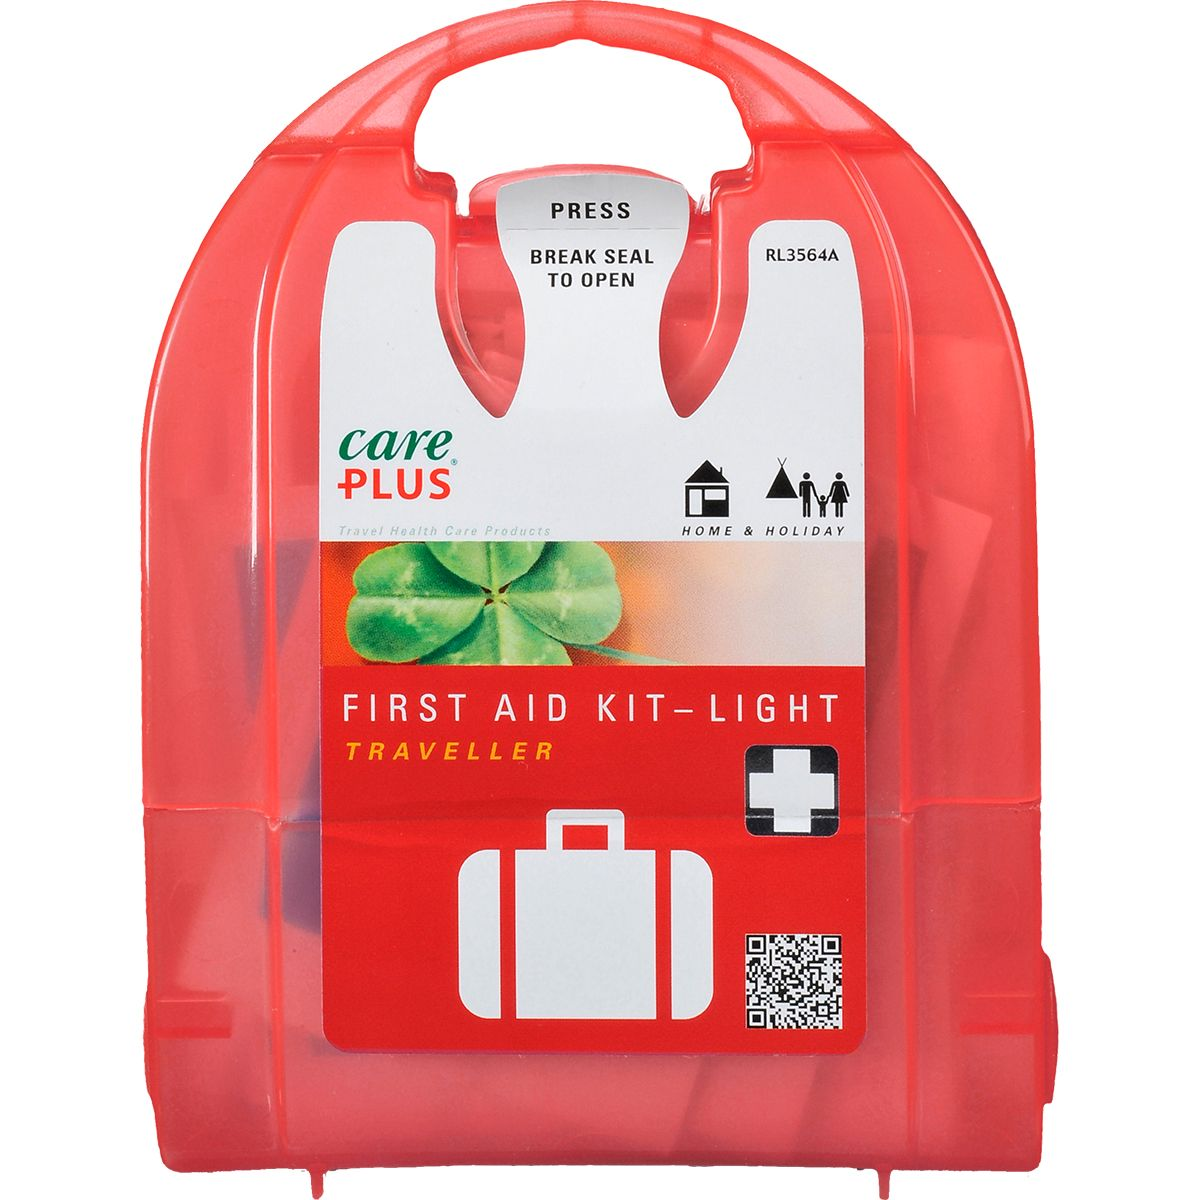 Image of Care Plus First Aid Kit Light - Traveller (Weiß)